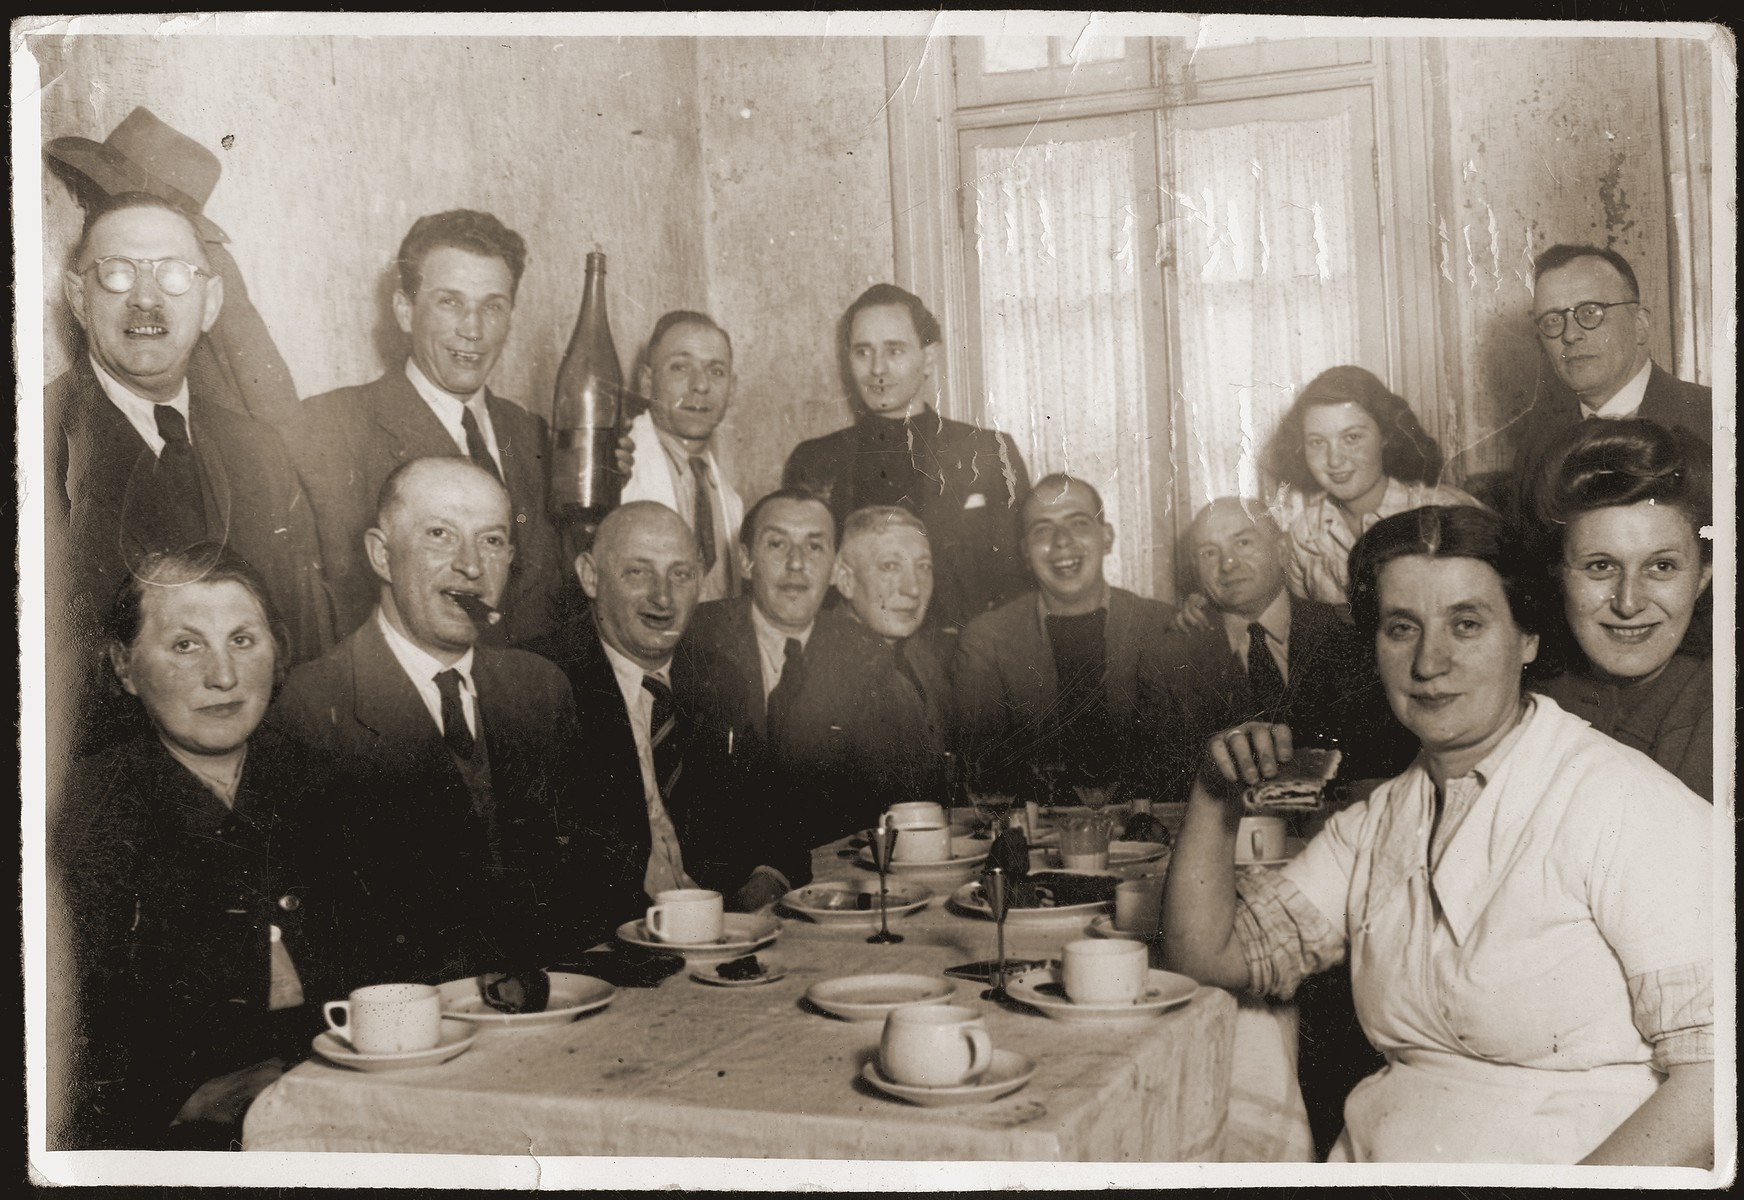 Jewish refugees at a birthday party in Shanghai.    Albert Jakobsberg and Herbert Feibel are pictured seated fifth and sixth from the left respectively. The woman sitting in the front left side, wearing white, is Adele Lowenthal, Hanne Lowenthal's sister.